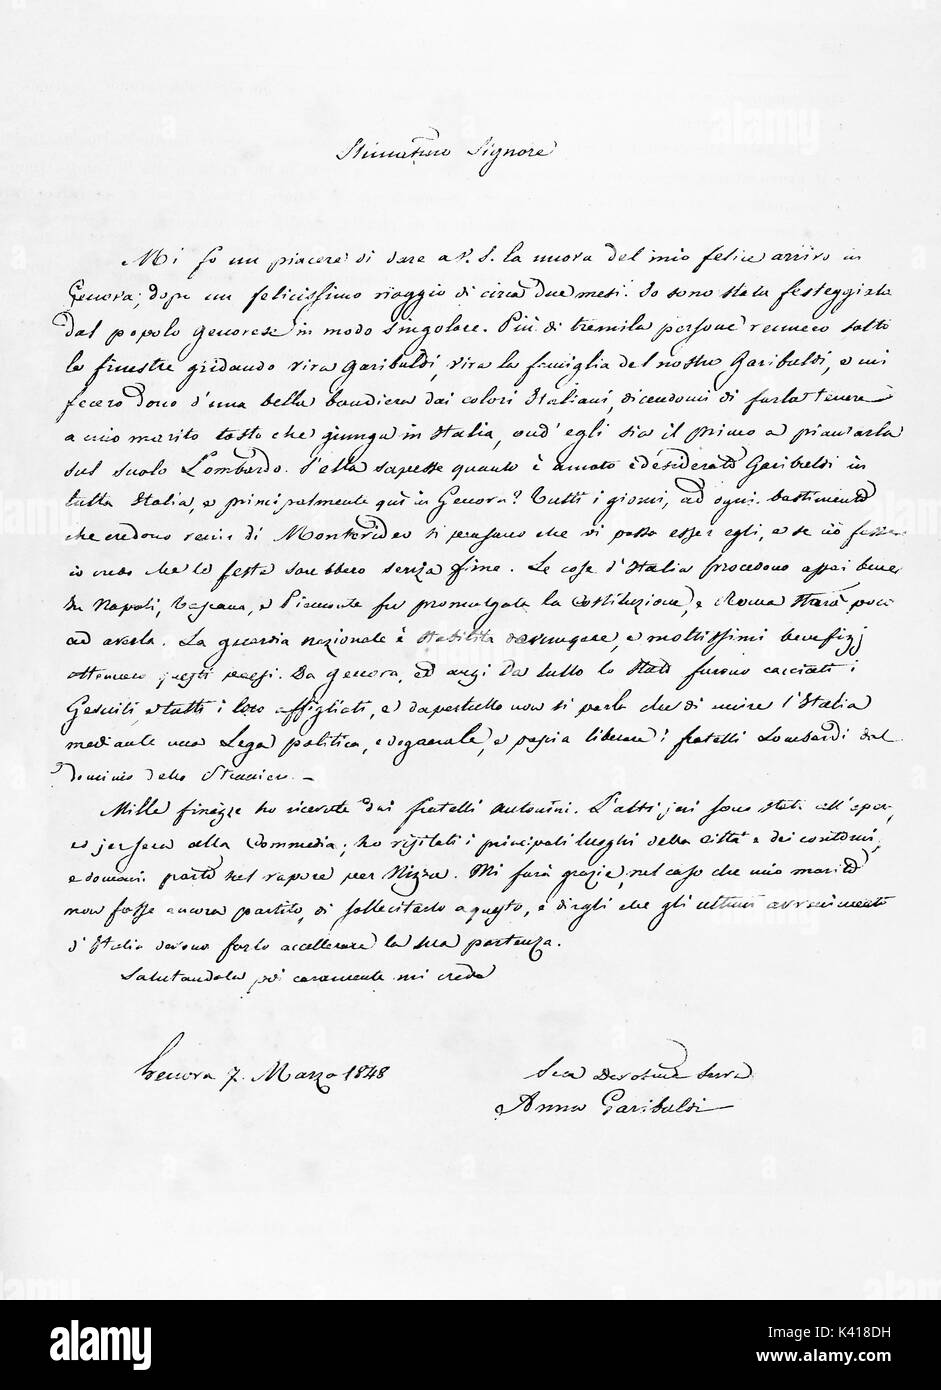 Ancient letter hand written in splendid traditional calligraphy using pen and inkwell. Reproduction of a letter from Anita to Stefano Antonini published on Garibaldi e i Suoi Tempi Milan Italy 1884 - Stock Image